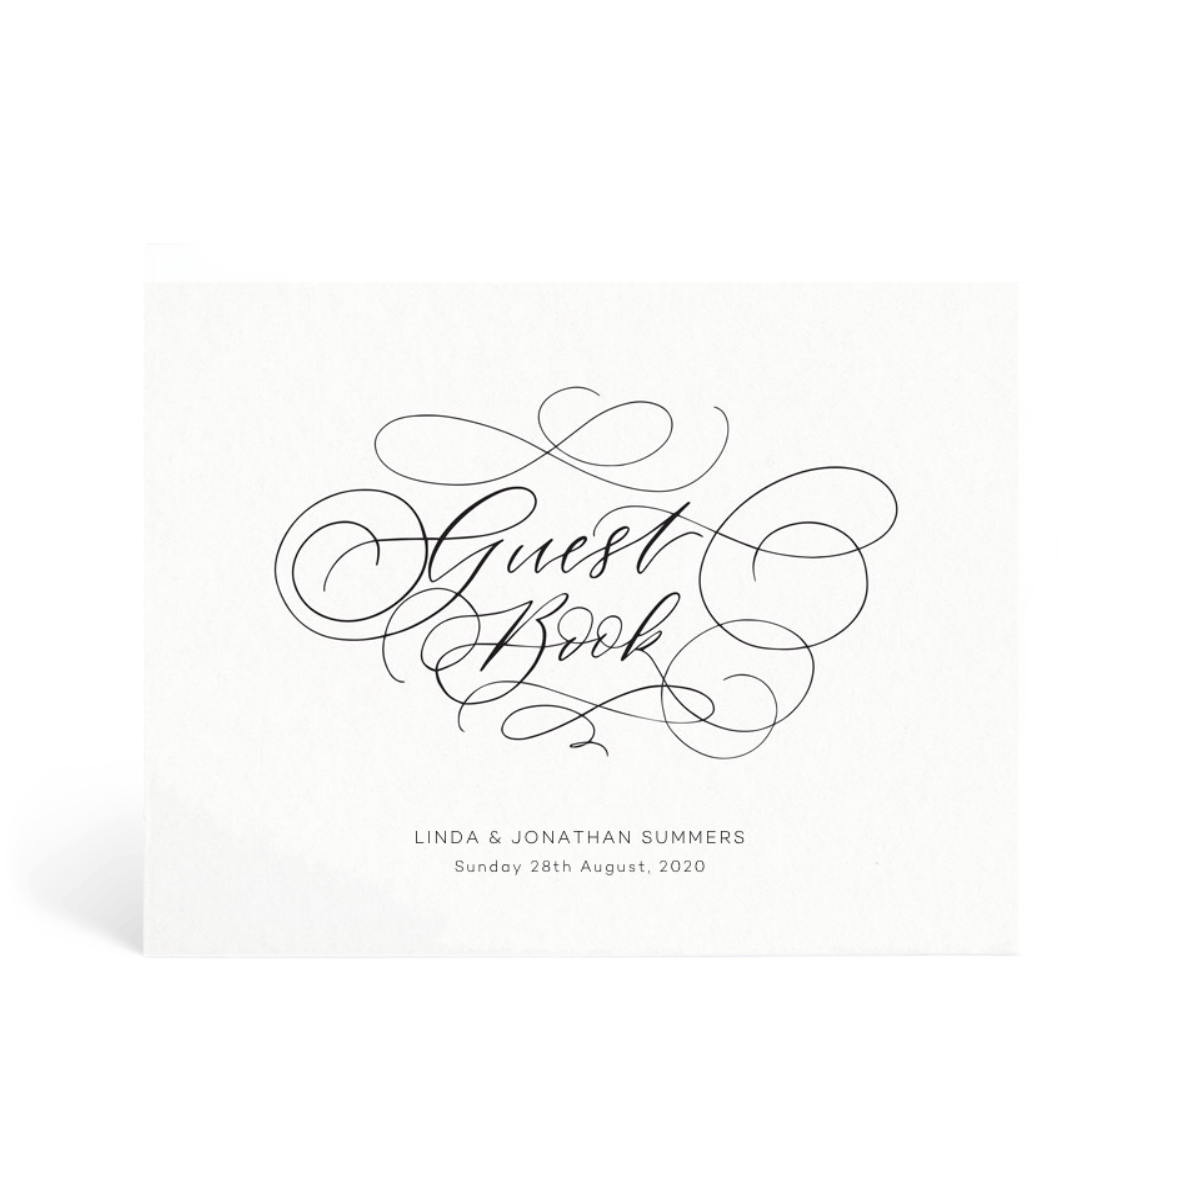 Https%3a%2f%2fwww.papier.com%2fproduct image%2f78866%2f28%2fclassic calligraphy 18506 front 1560334511.png?ixlib=rb 1.1